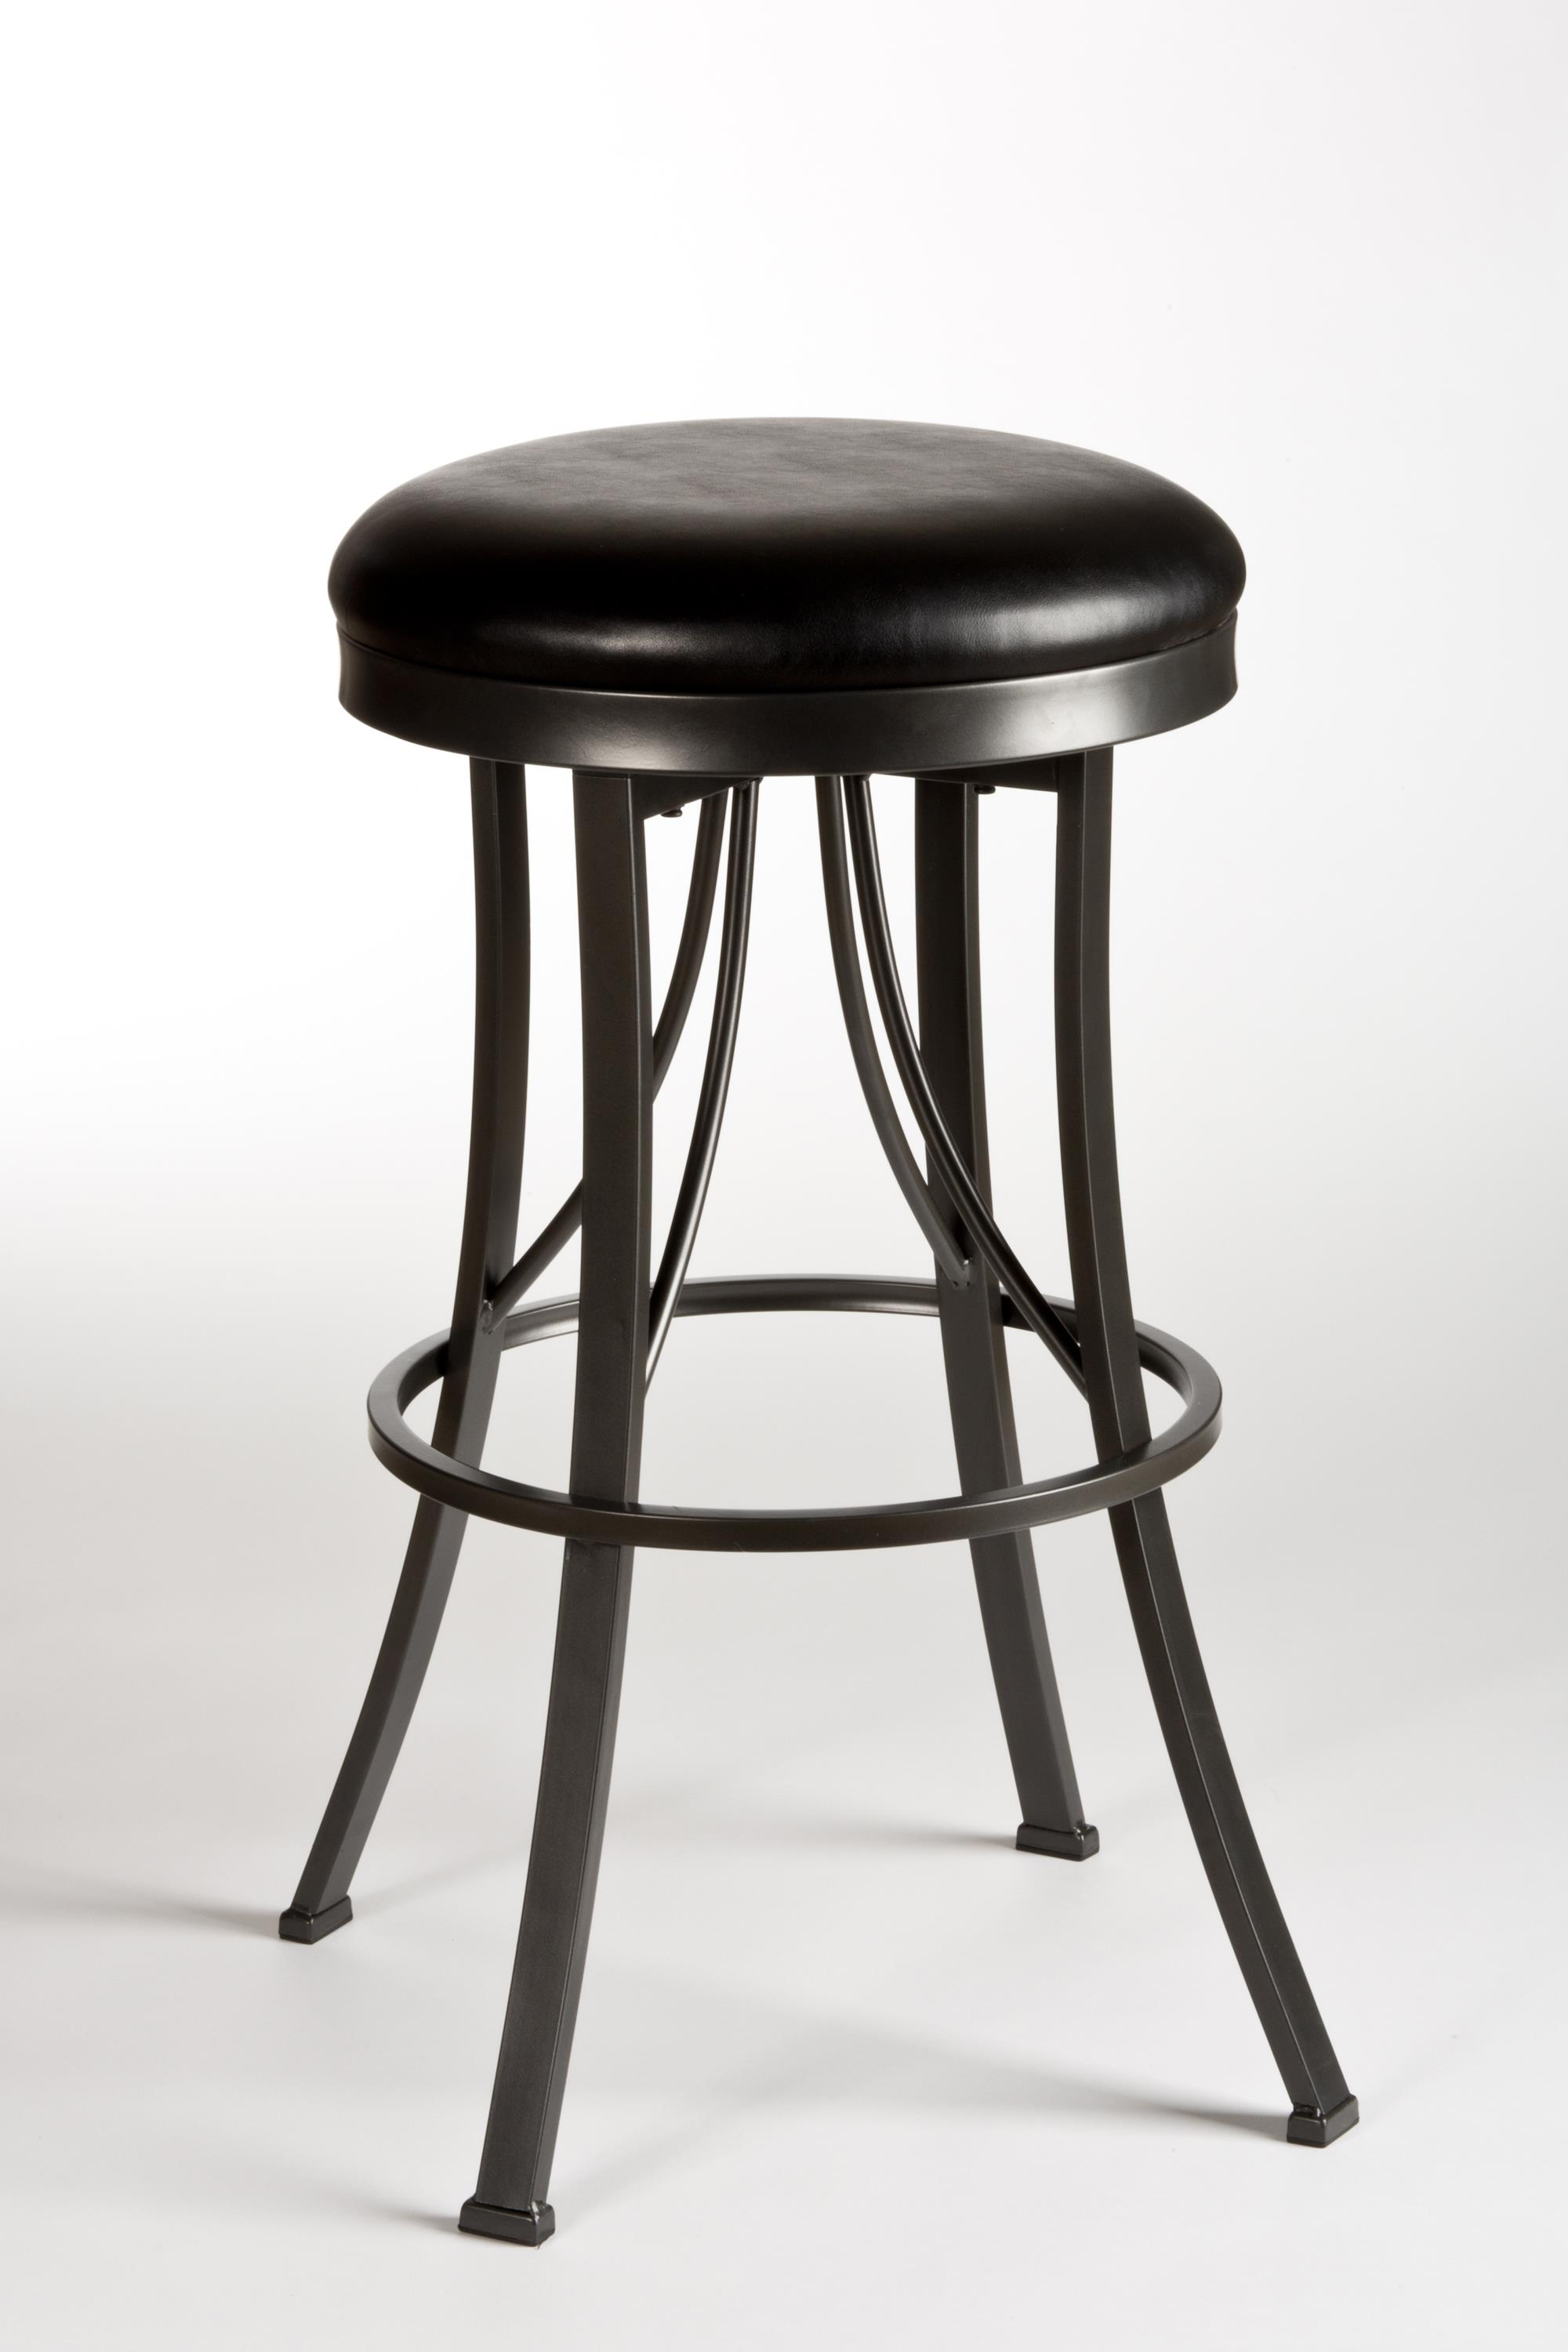 Hillsdale Metal Stools Ontario Backless Bar Stool - Item Number: 5149-830